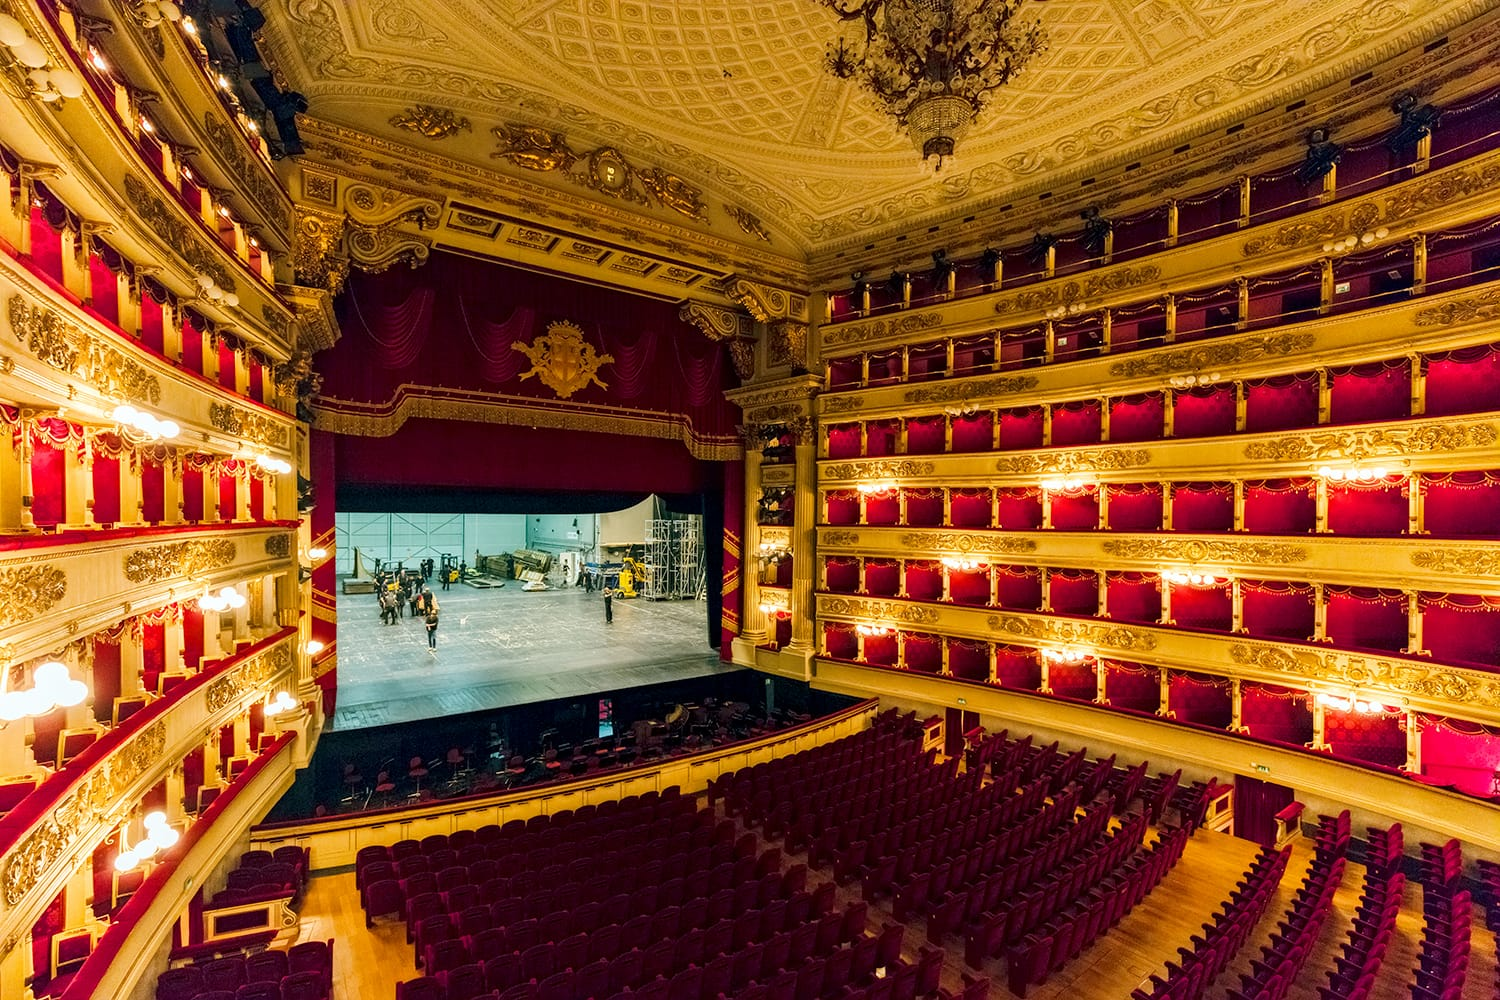 Main concert hall of Teatro alla Scala, an opera house in Milan, Italy